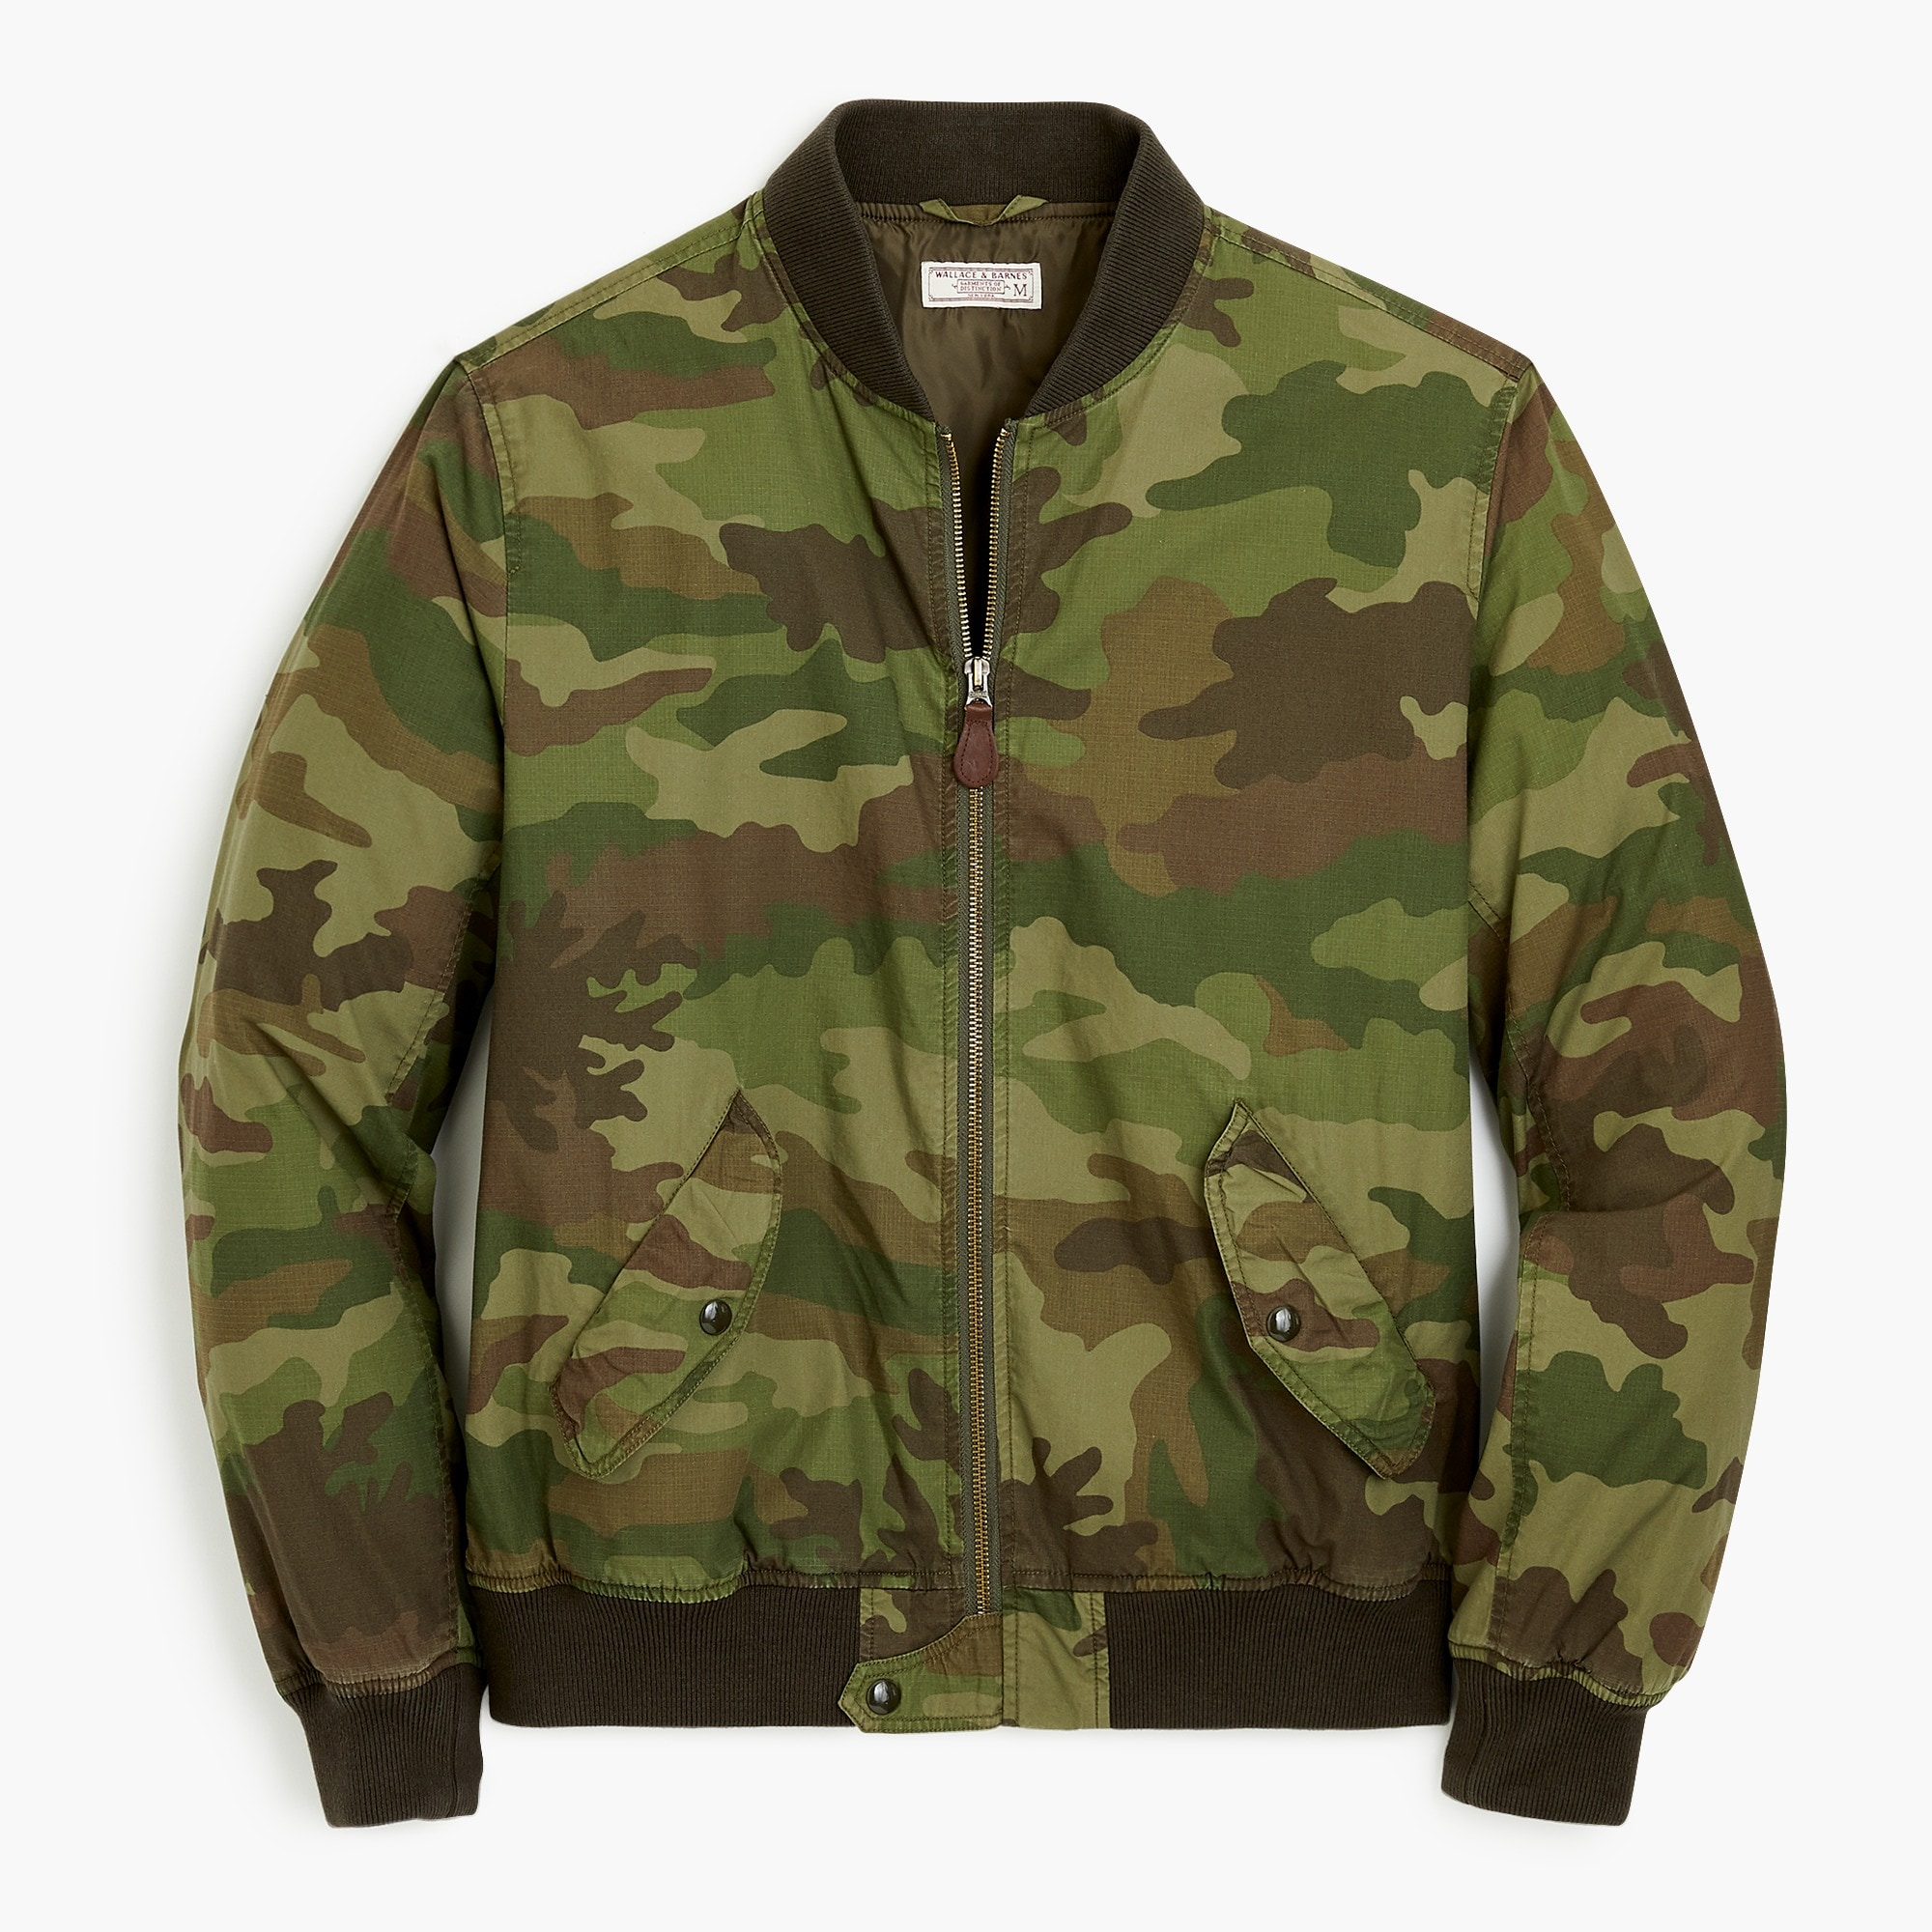 Wallace & Barnes MA-1 bomber jacket in camo